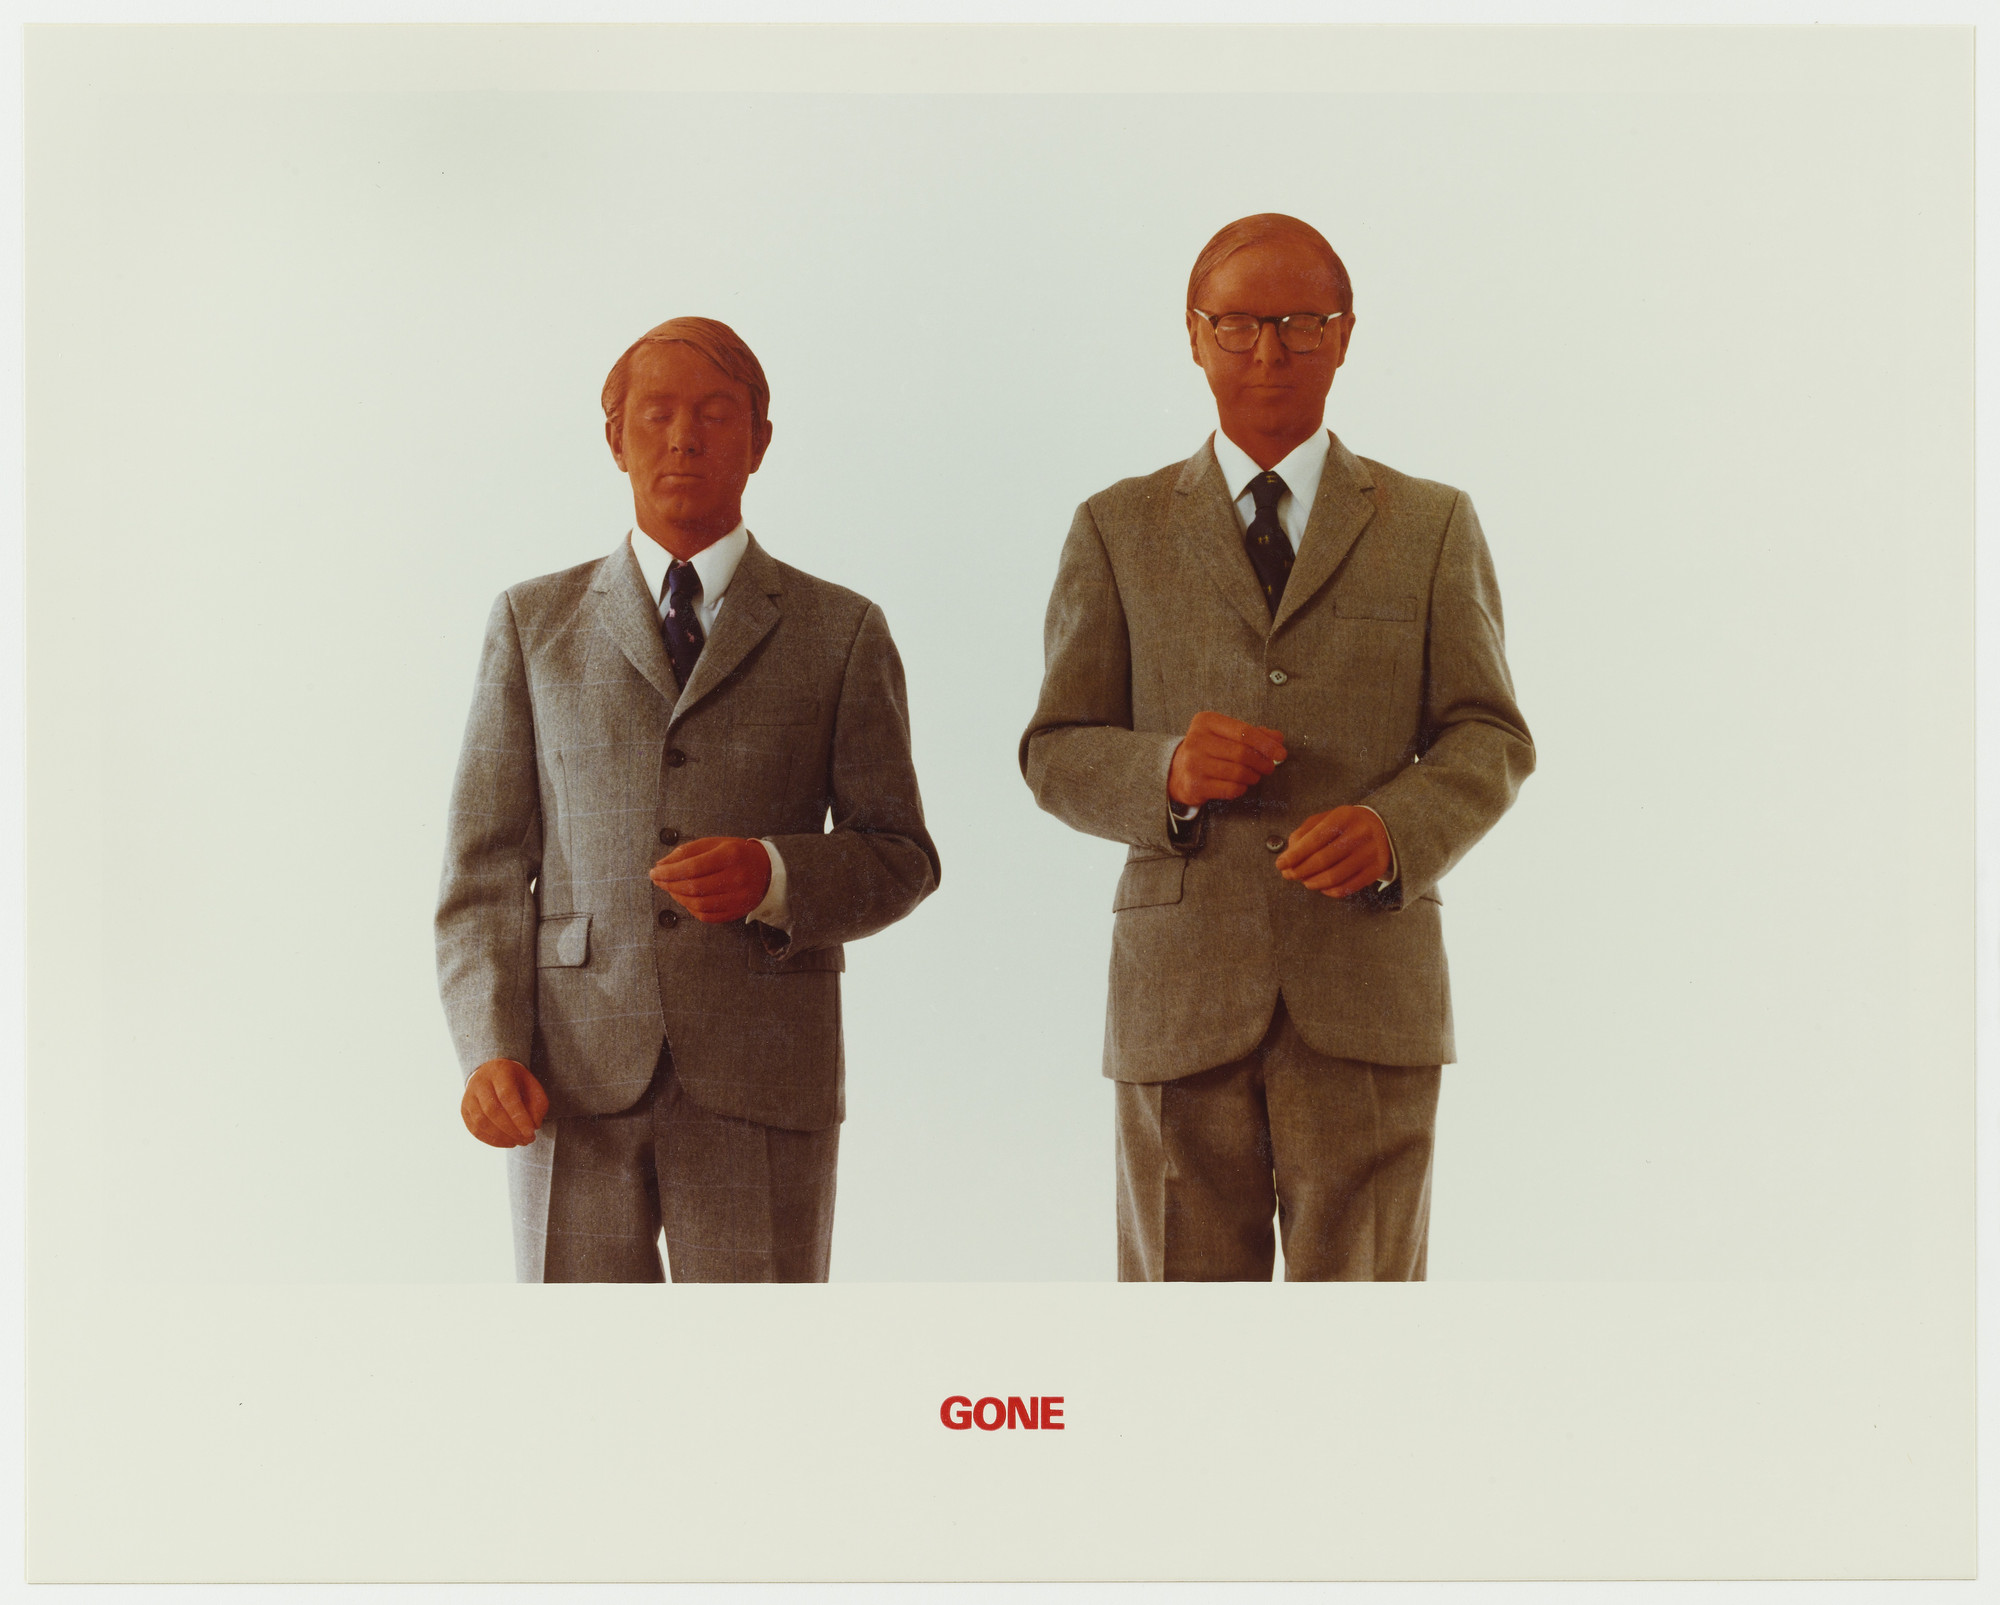 Gilbert & George. Gone. 1975